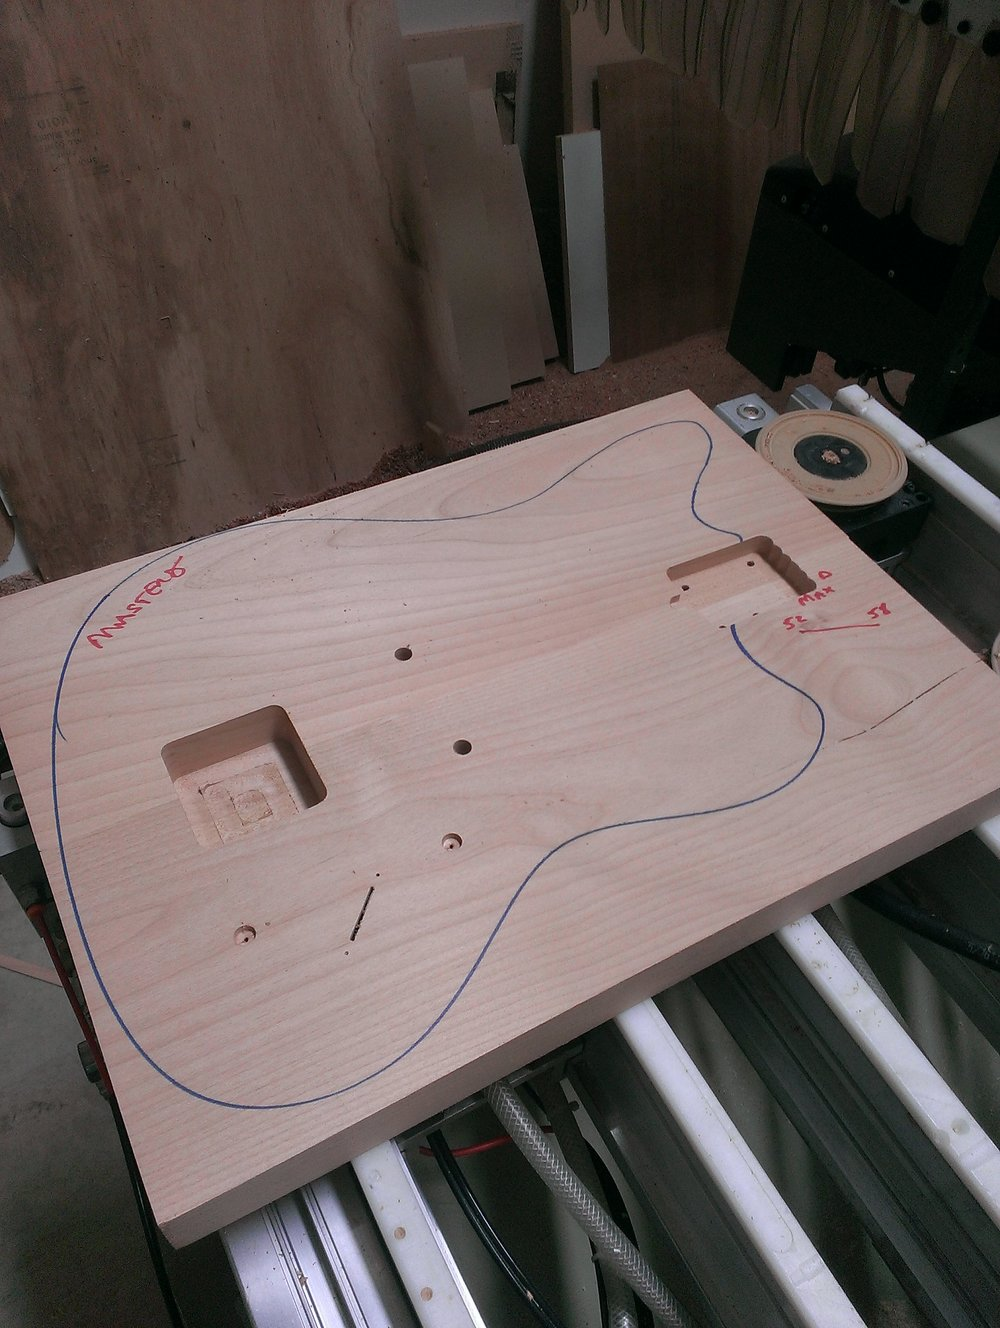 Making a guitar is easy - just take a piece of wood and cut off everything that doesn't look like a guitar.